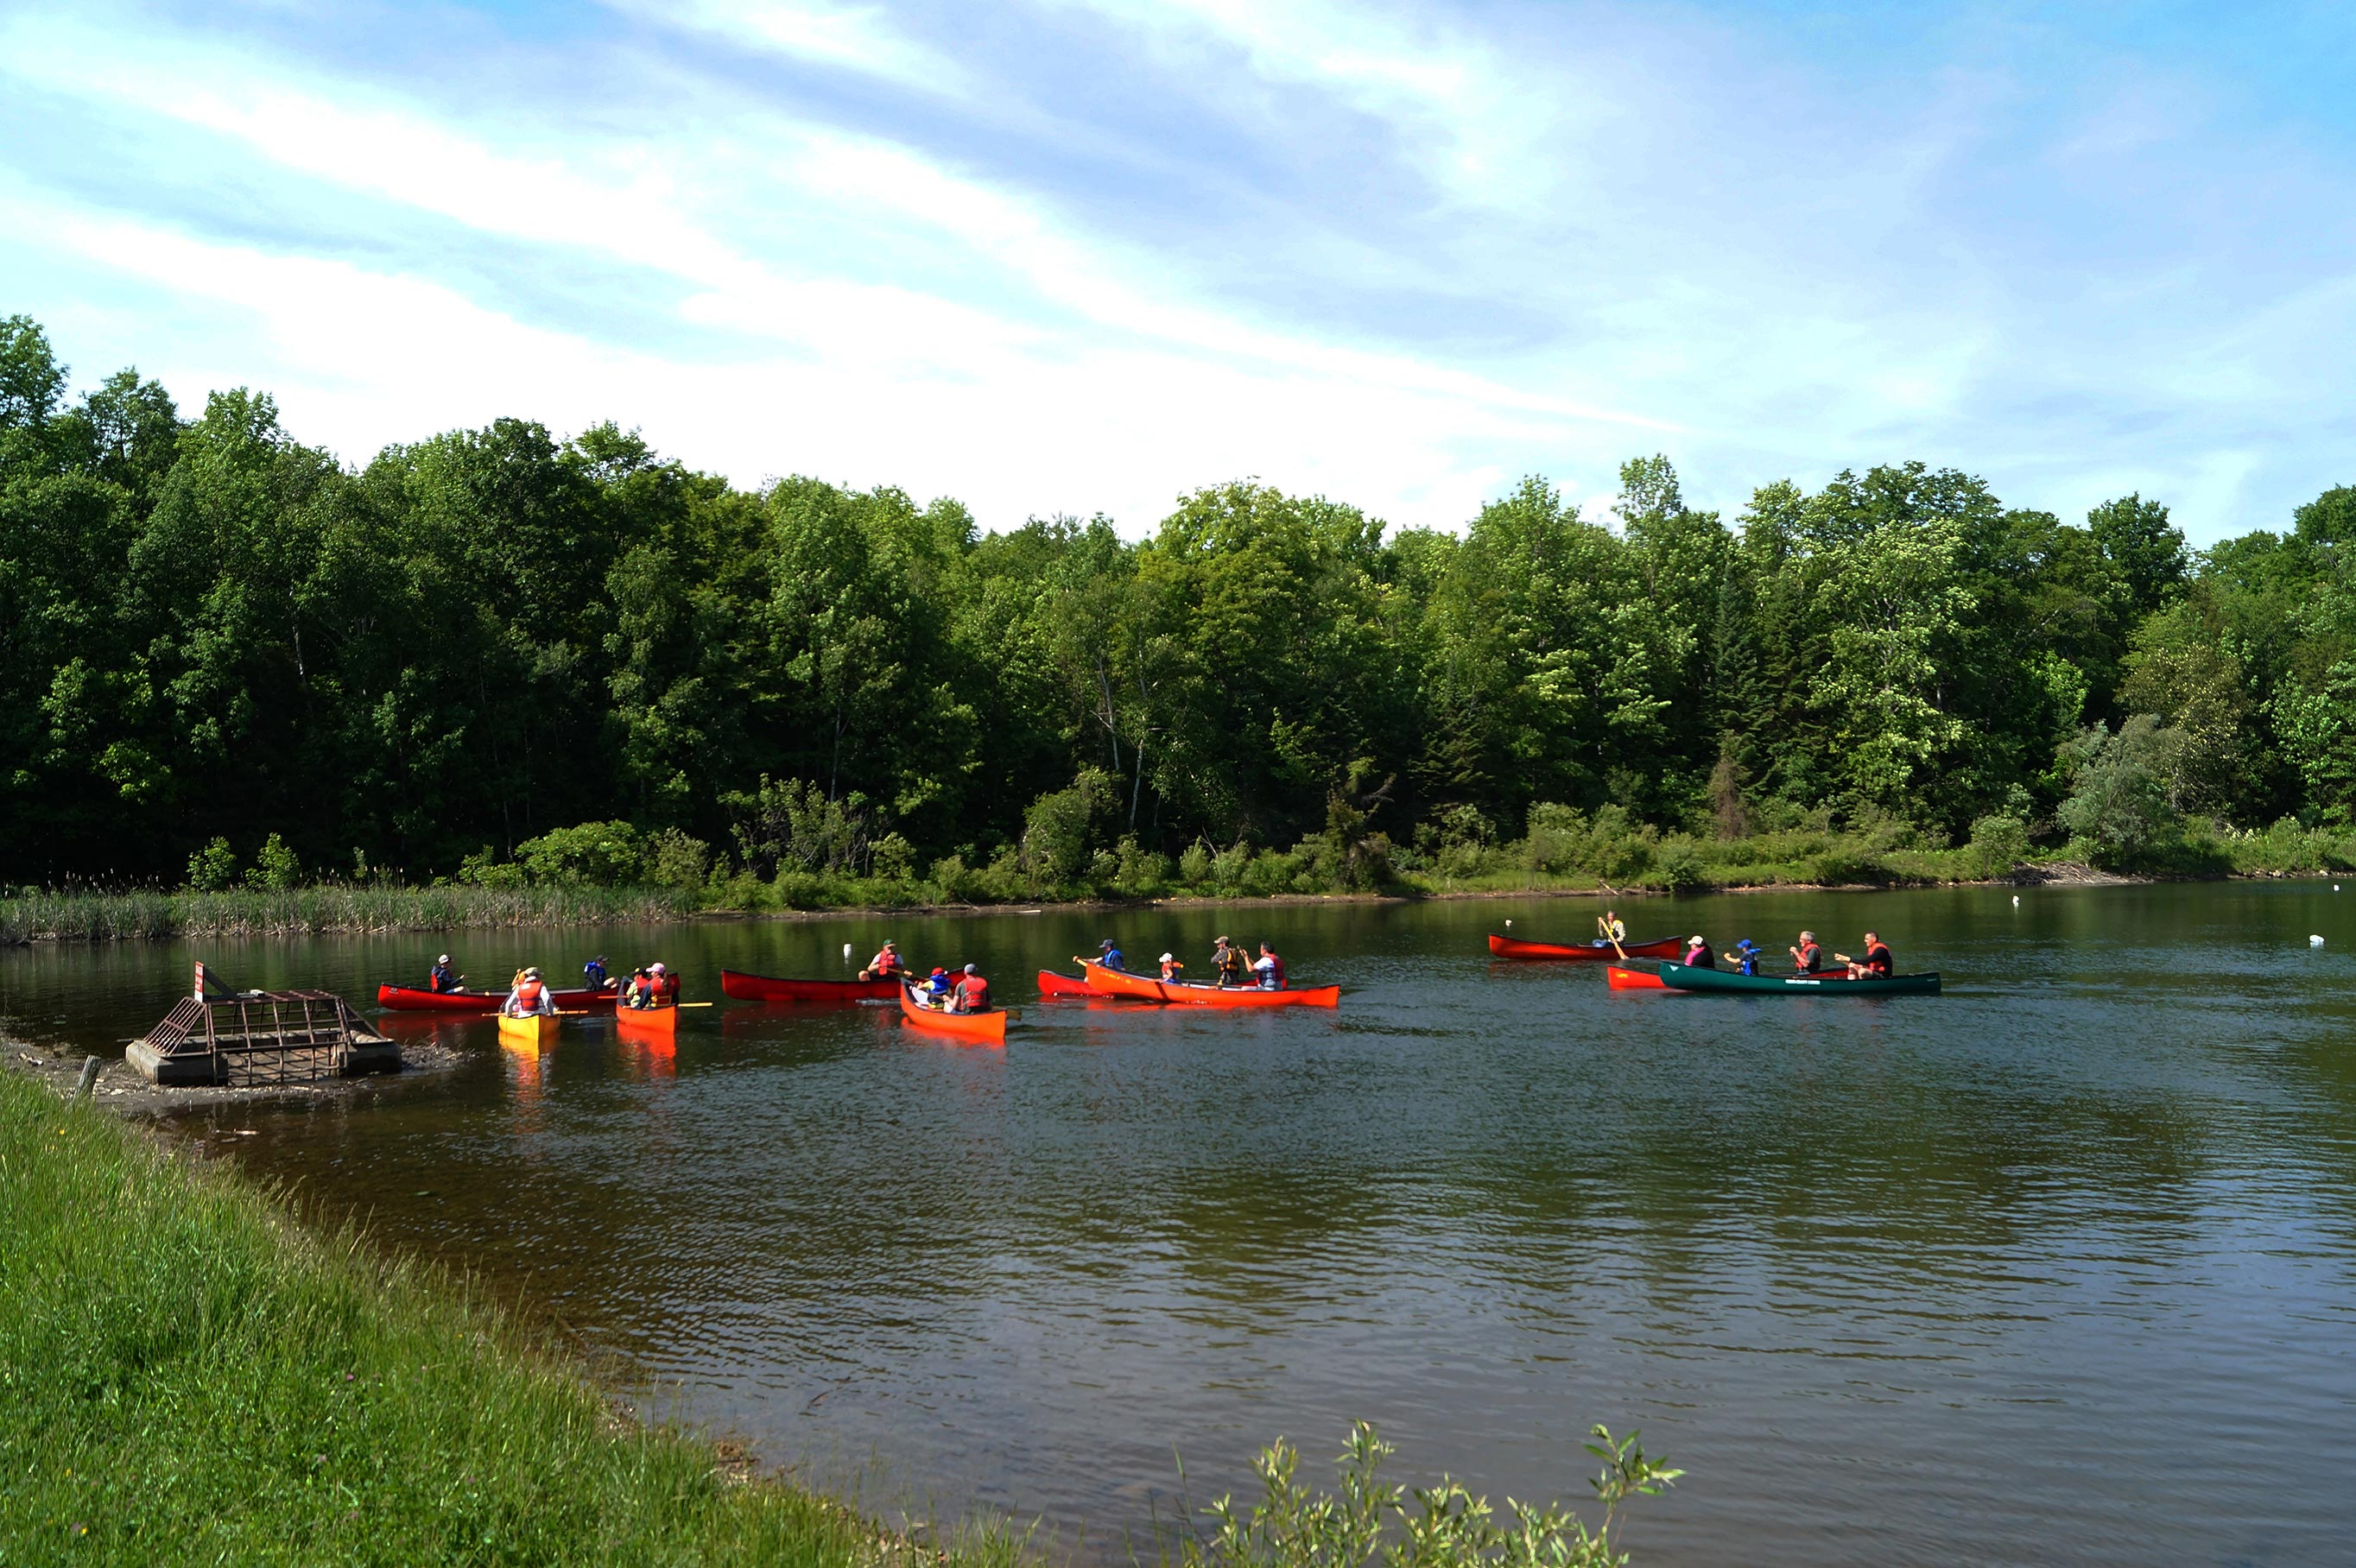 People participating in canoe instruction